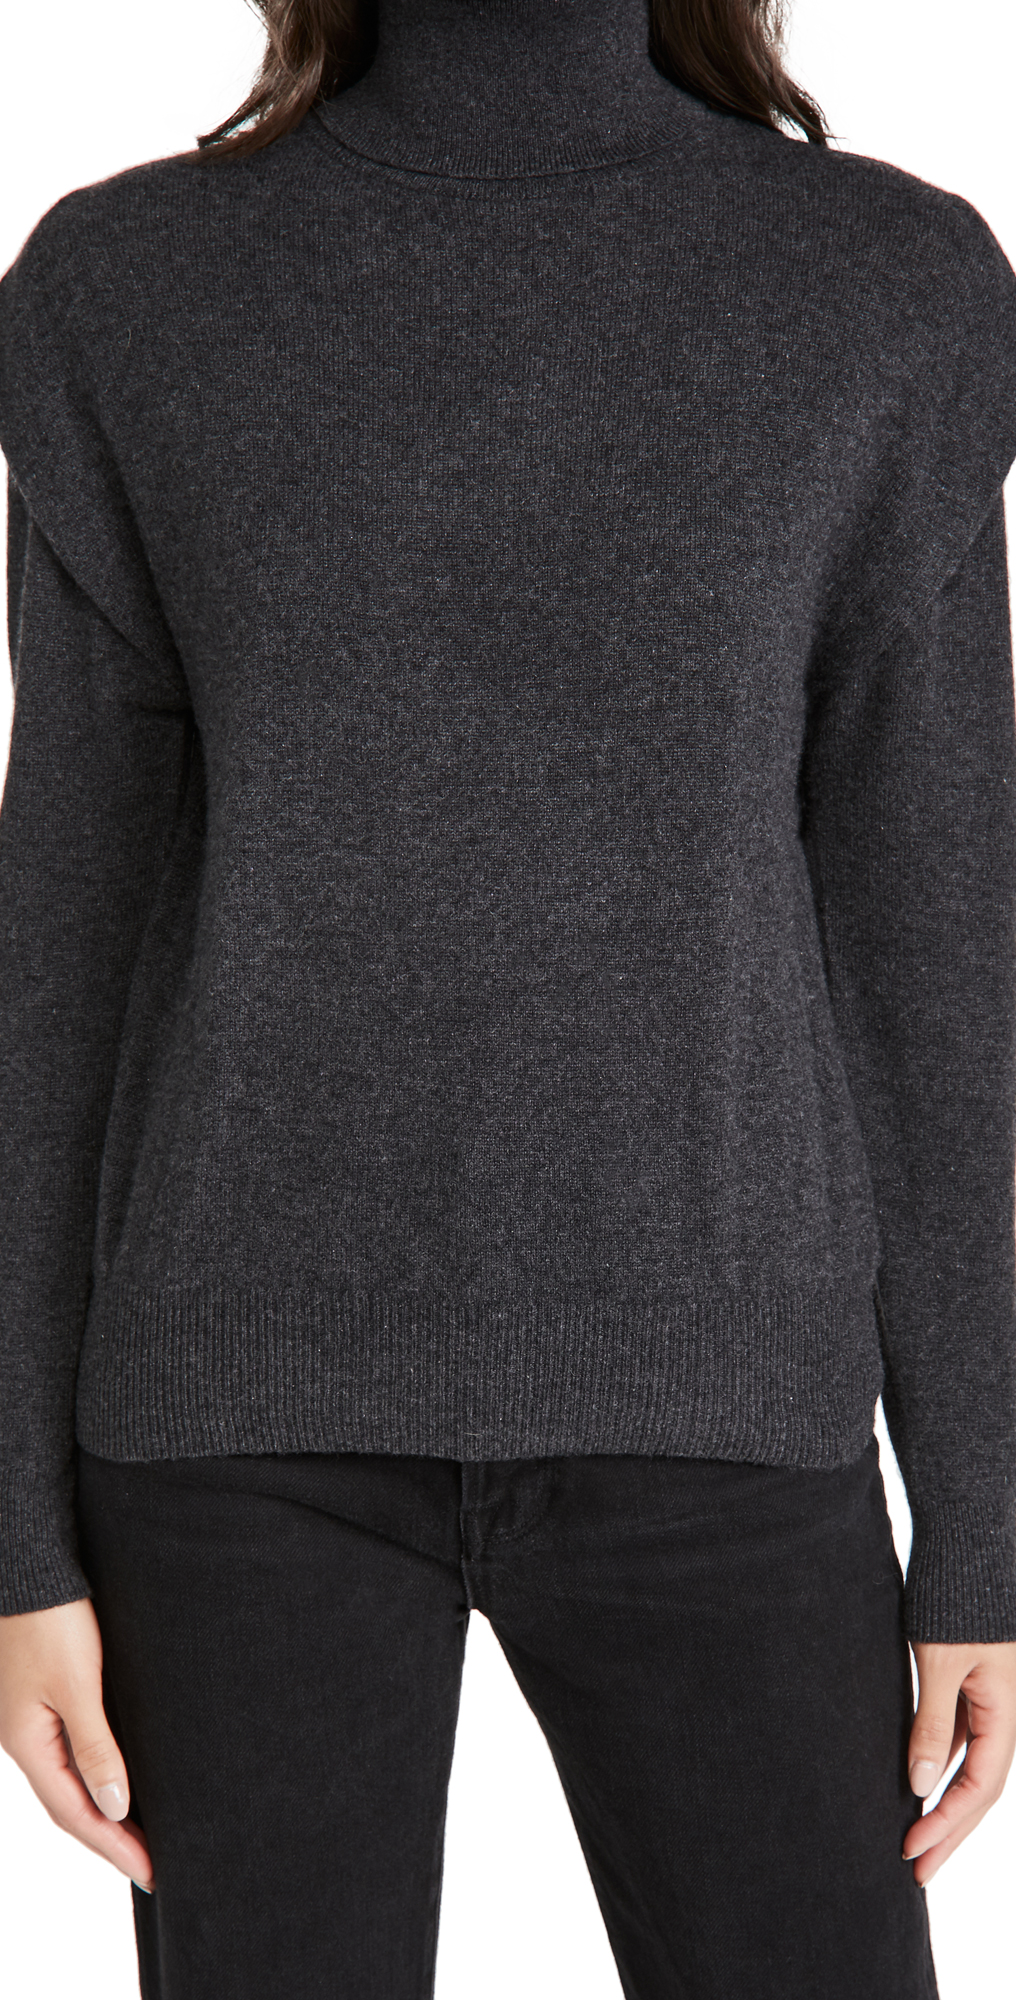 Autumn Cashmere Flange Shoulder Cashmere Turtleneck